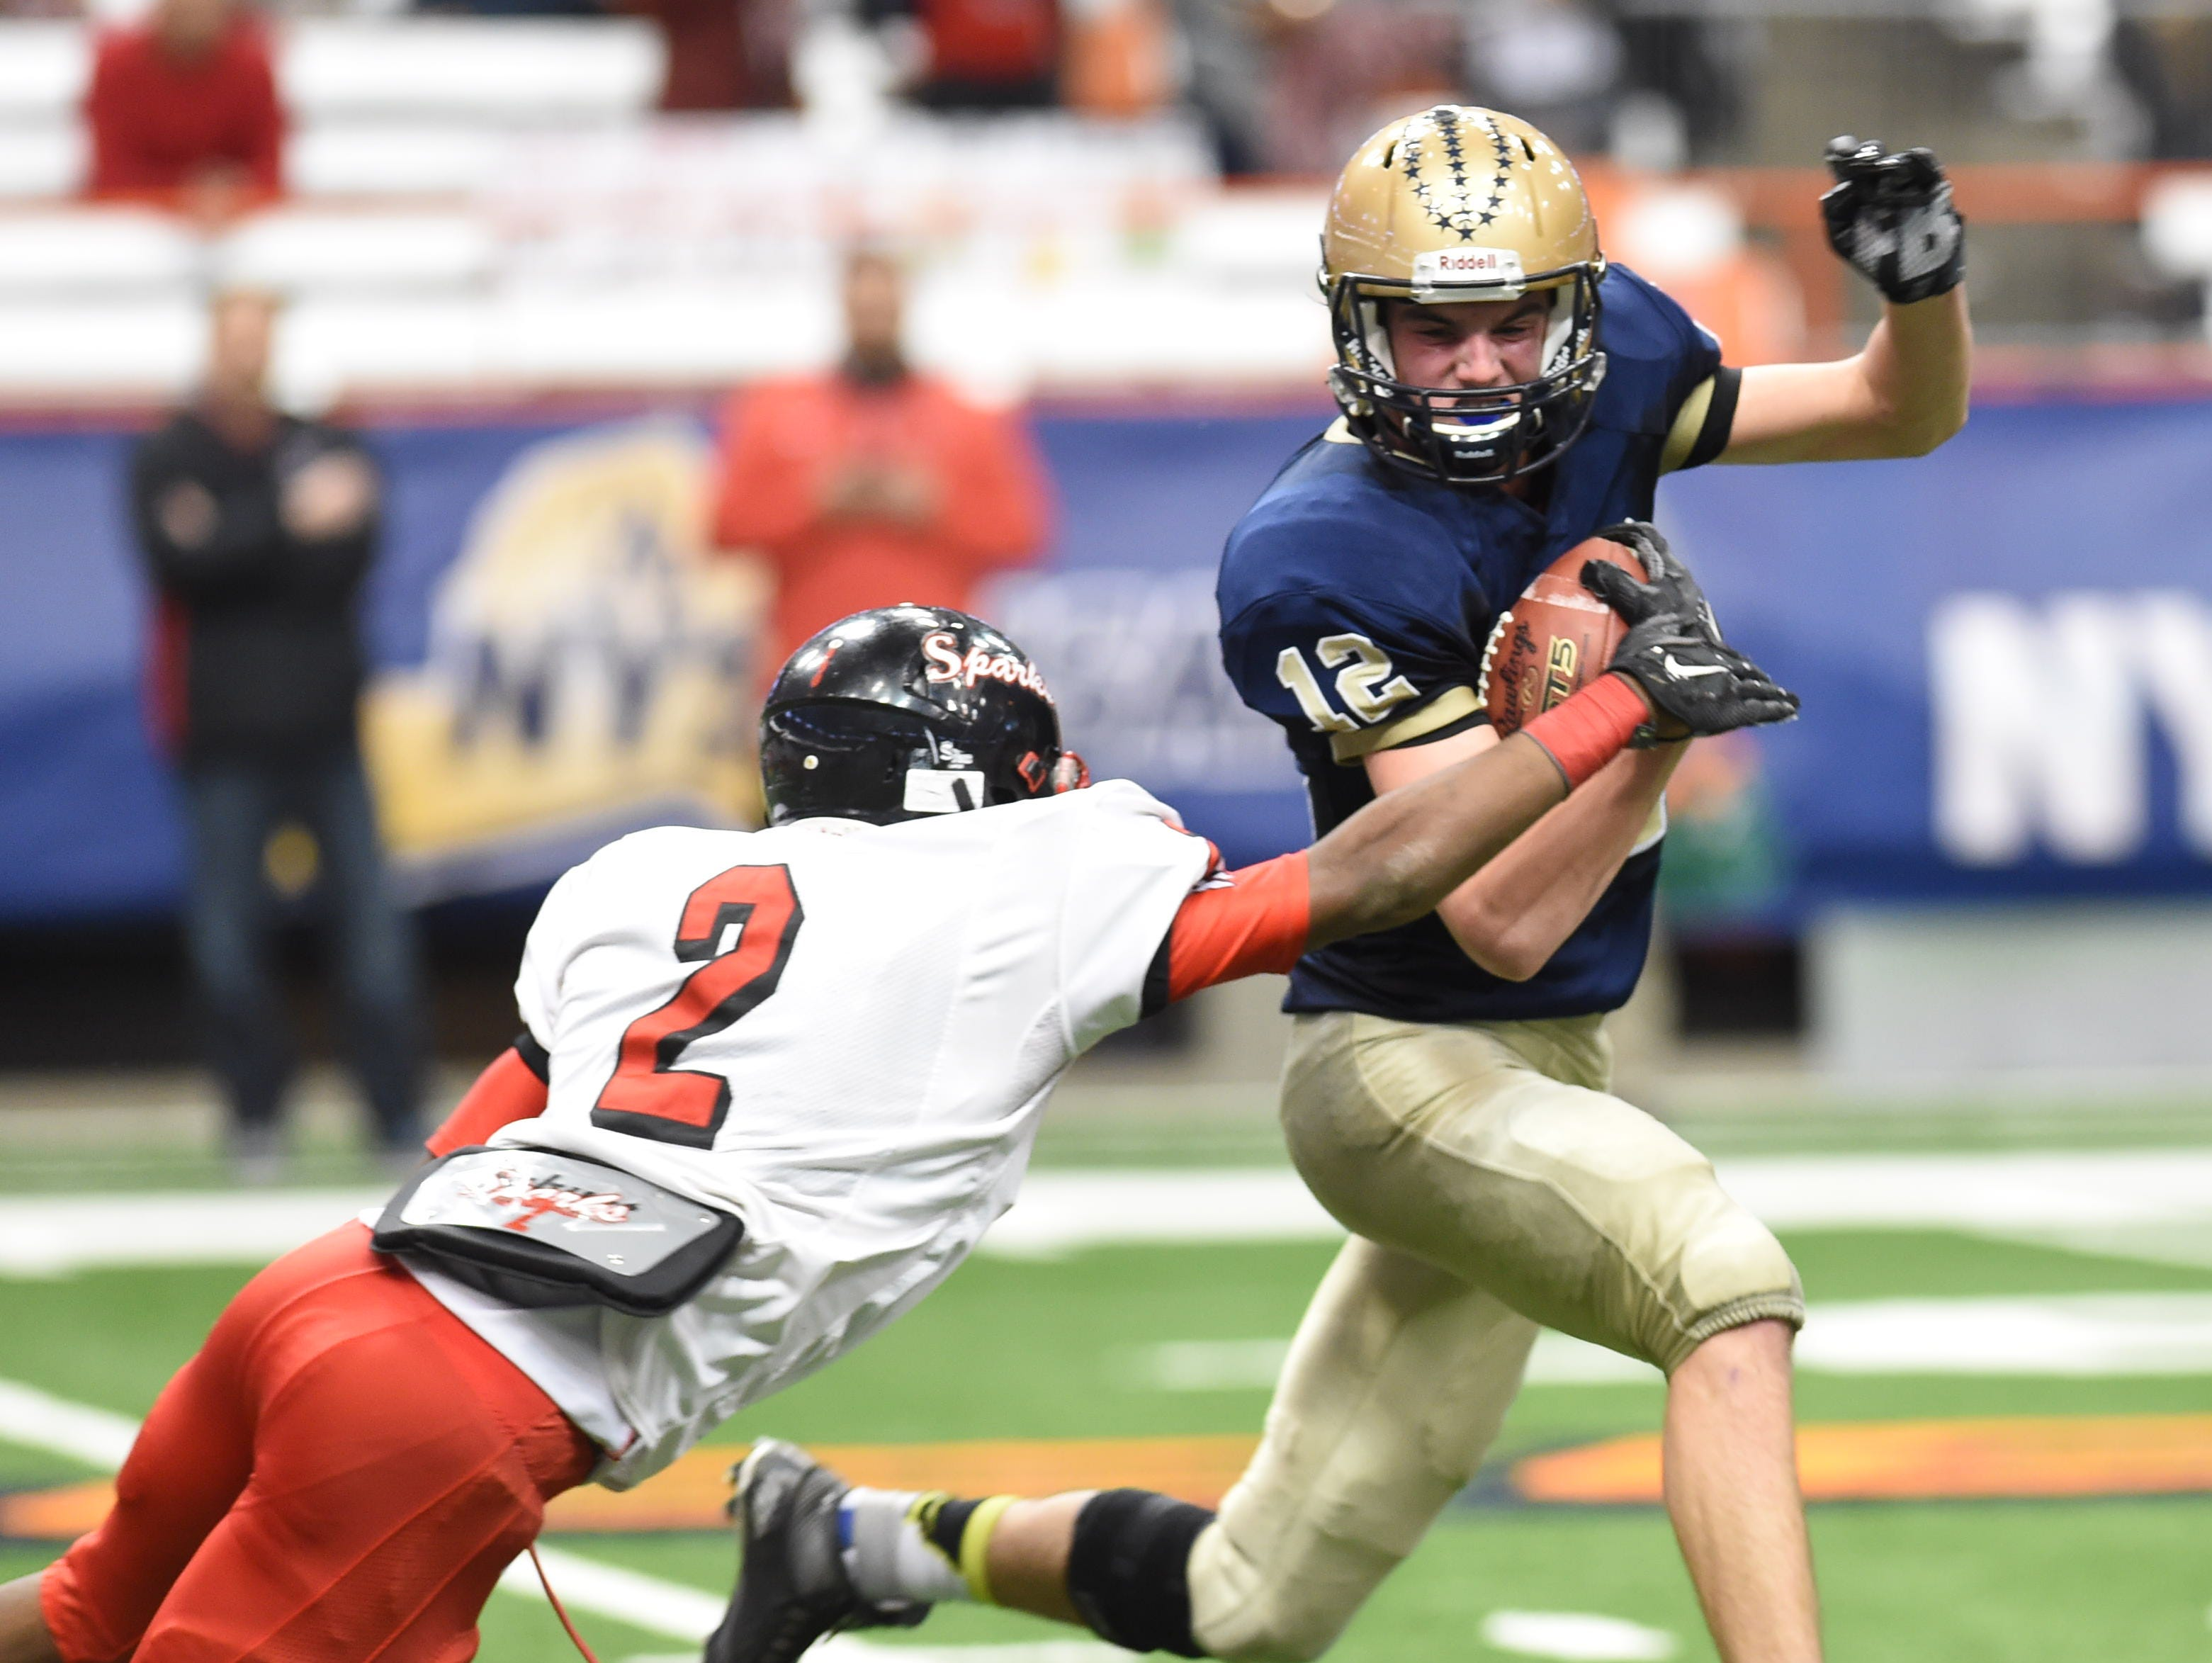 Lourdes' Luke Timm carries the ball away from South Park's Daryl Moore during the New York State Championship final in Syracuse on Friday.